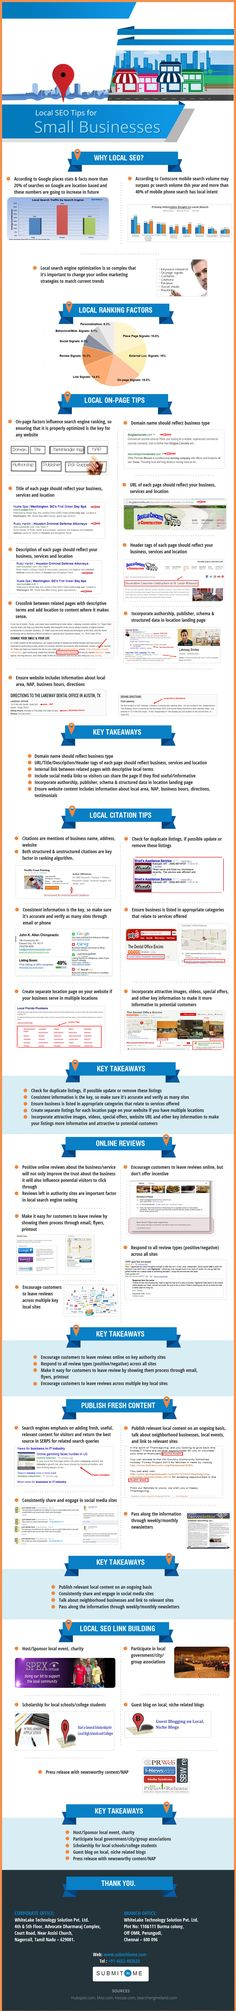 Local SEO Tips for Small Business   #infographic #business #SEO #LOCALSEO